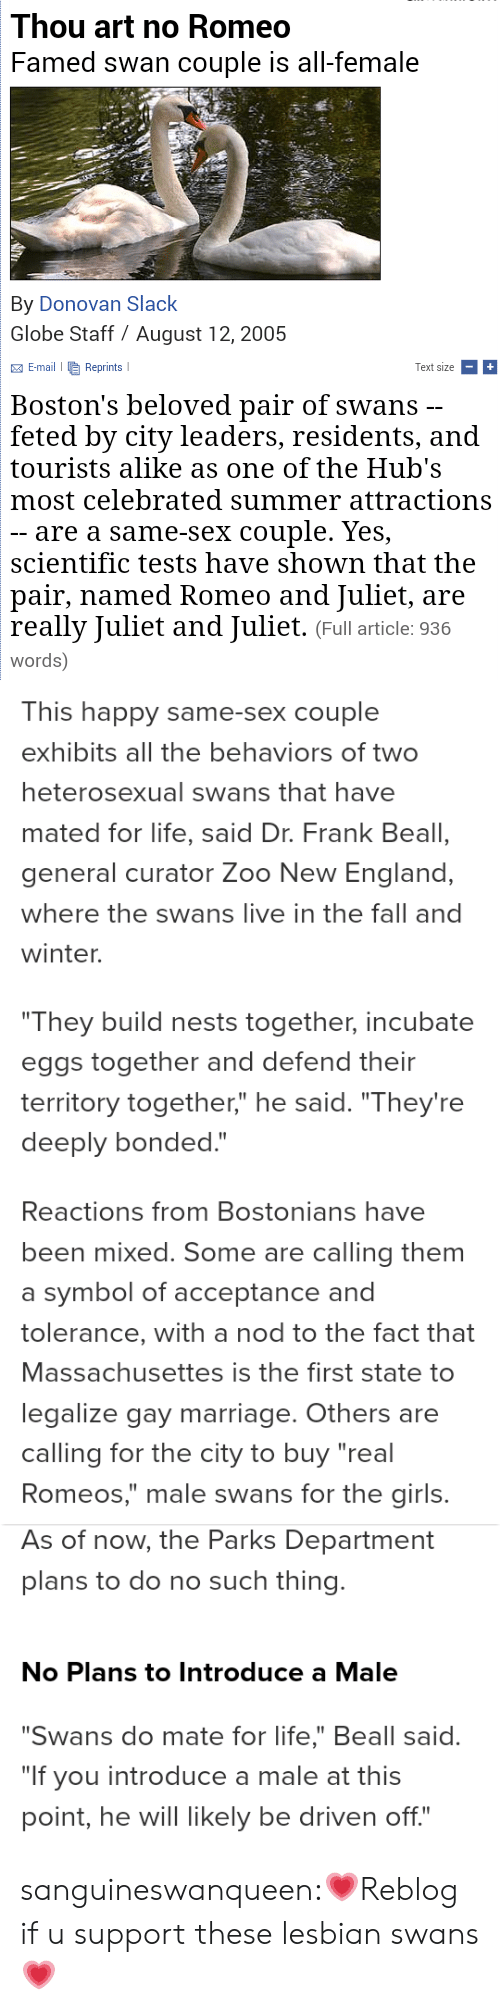 """Such Thing: Thou art no Romeo  Famed swan couple is all-female  By Donovan Slack  Globe Staff August 12, 2005  